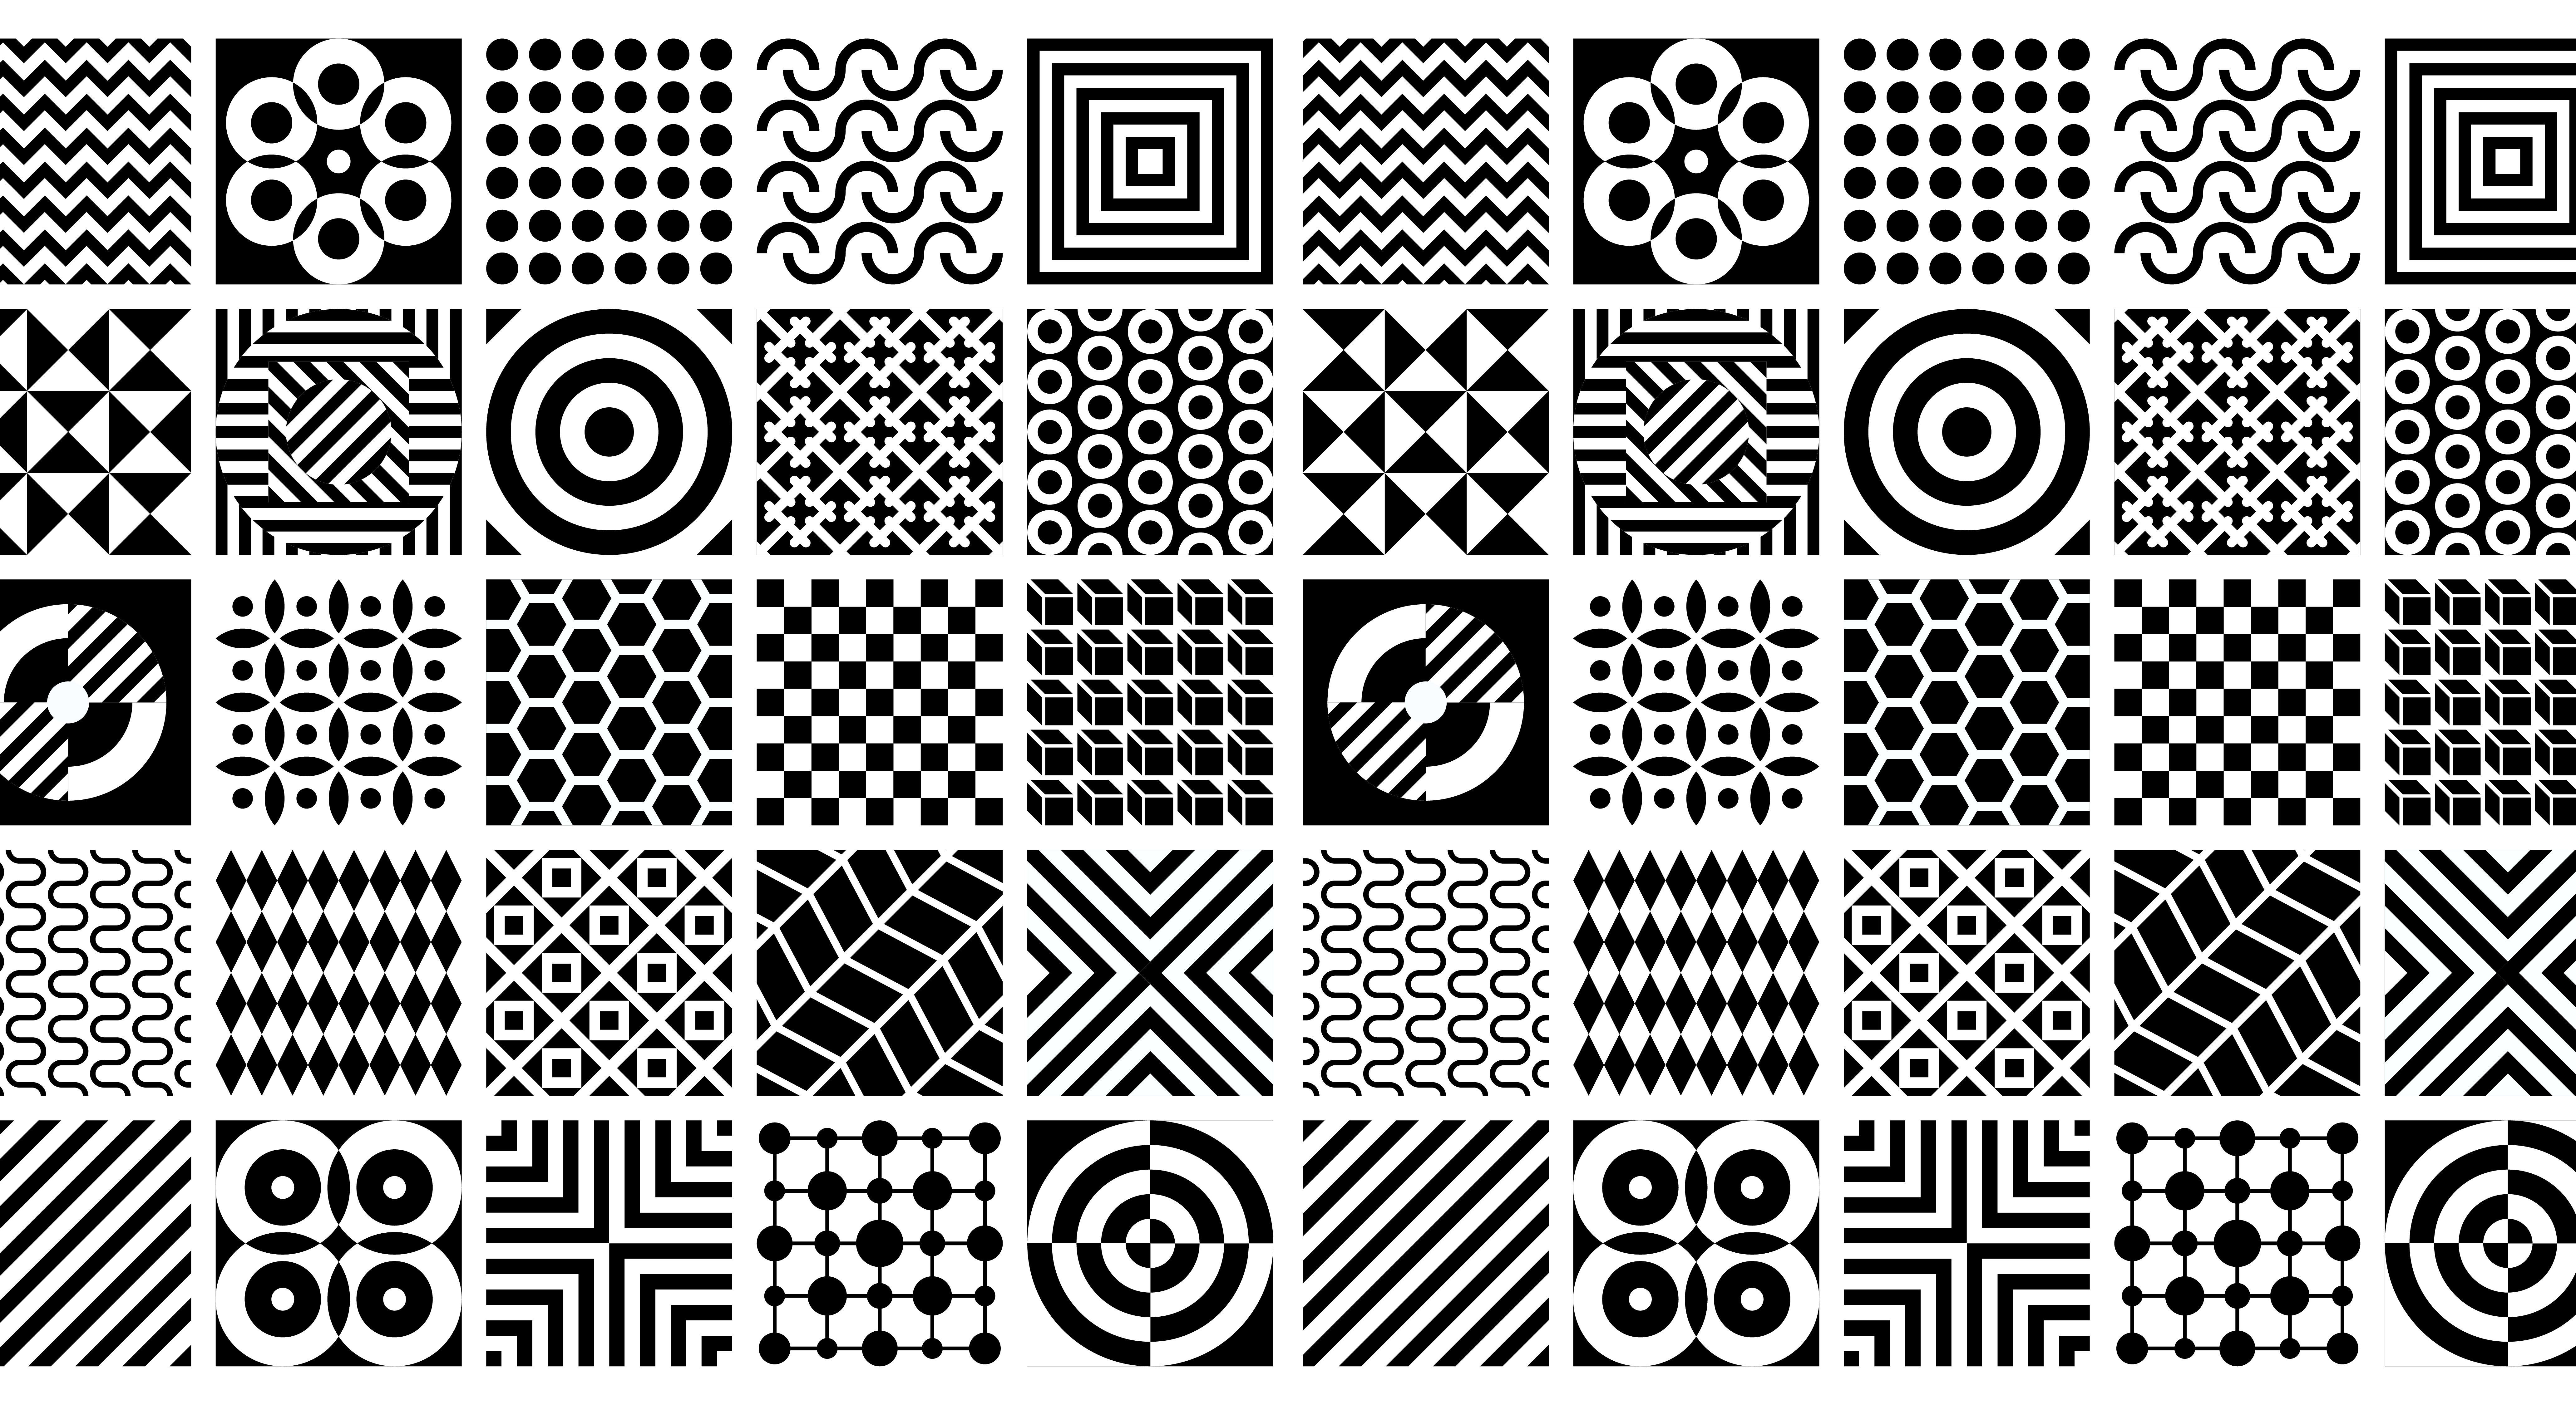 Geometric Patterns Are Extremely Versatile And Perfect For Many Different Types Of Bran Learning Graphic Design Software Design Patterns Graphic Design Trends